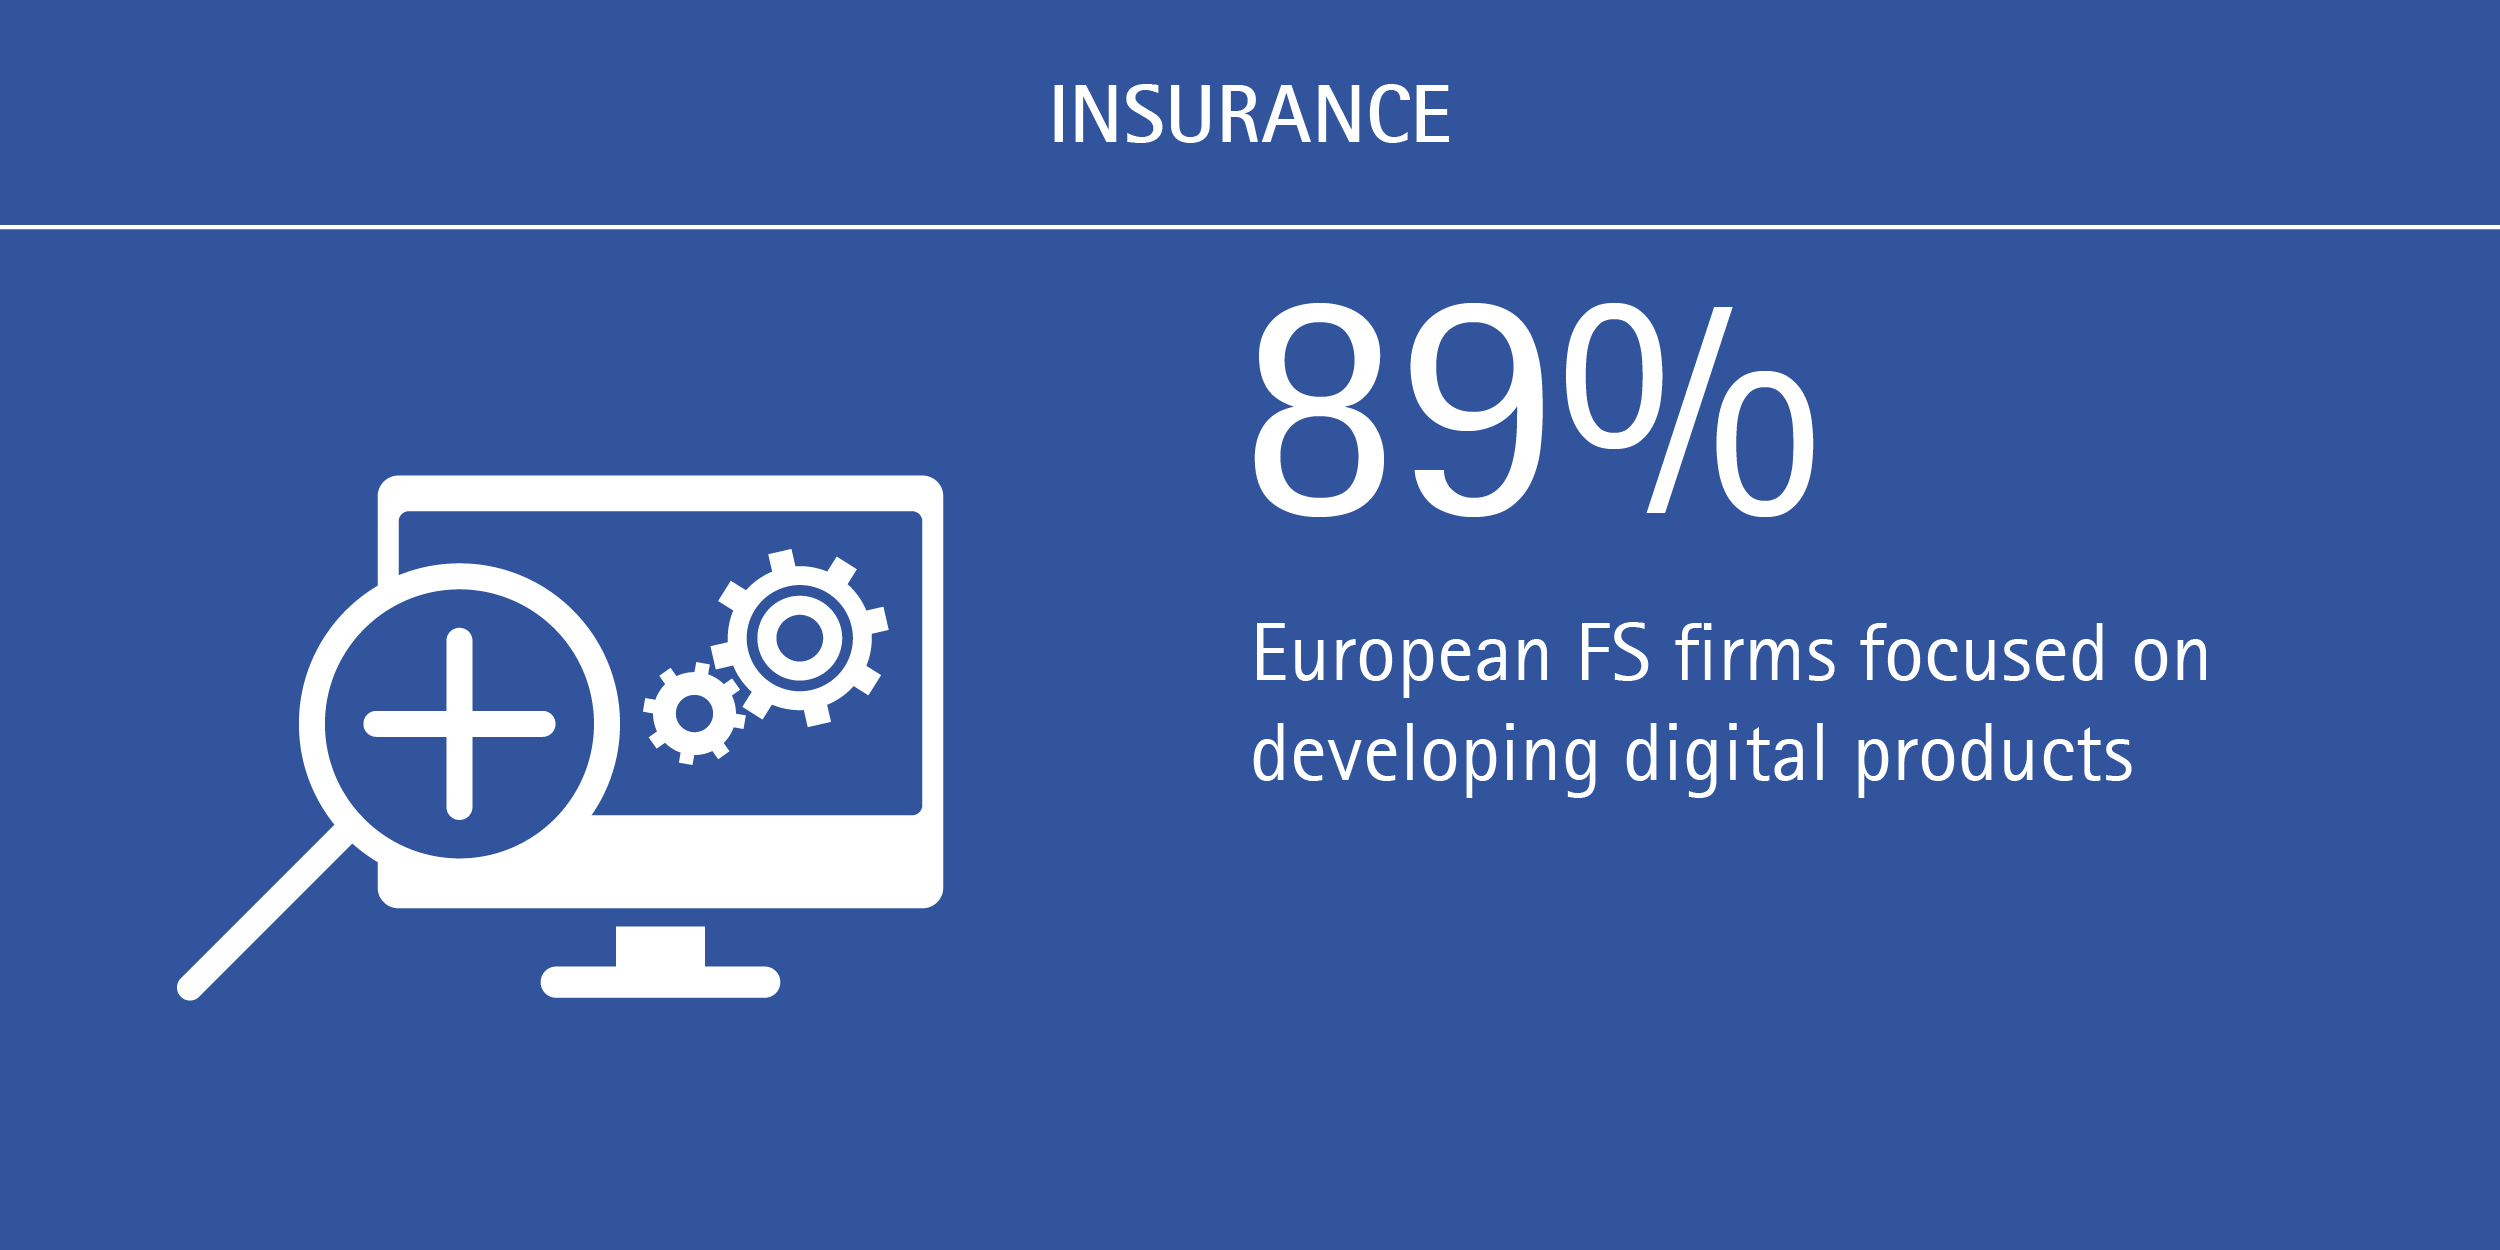 European banks and insurers need to close the digital production gap_Accenture INS (Figure 1)